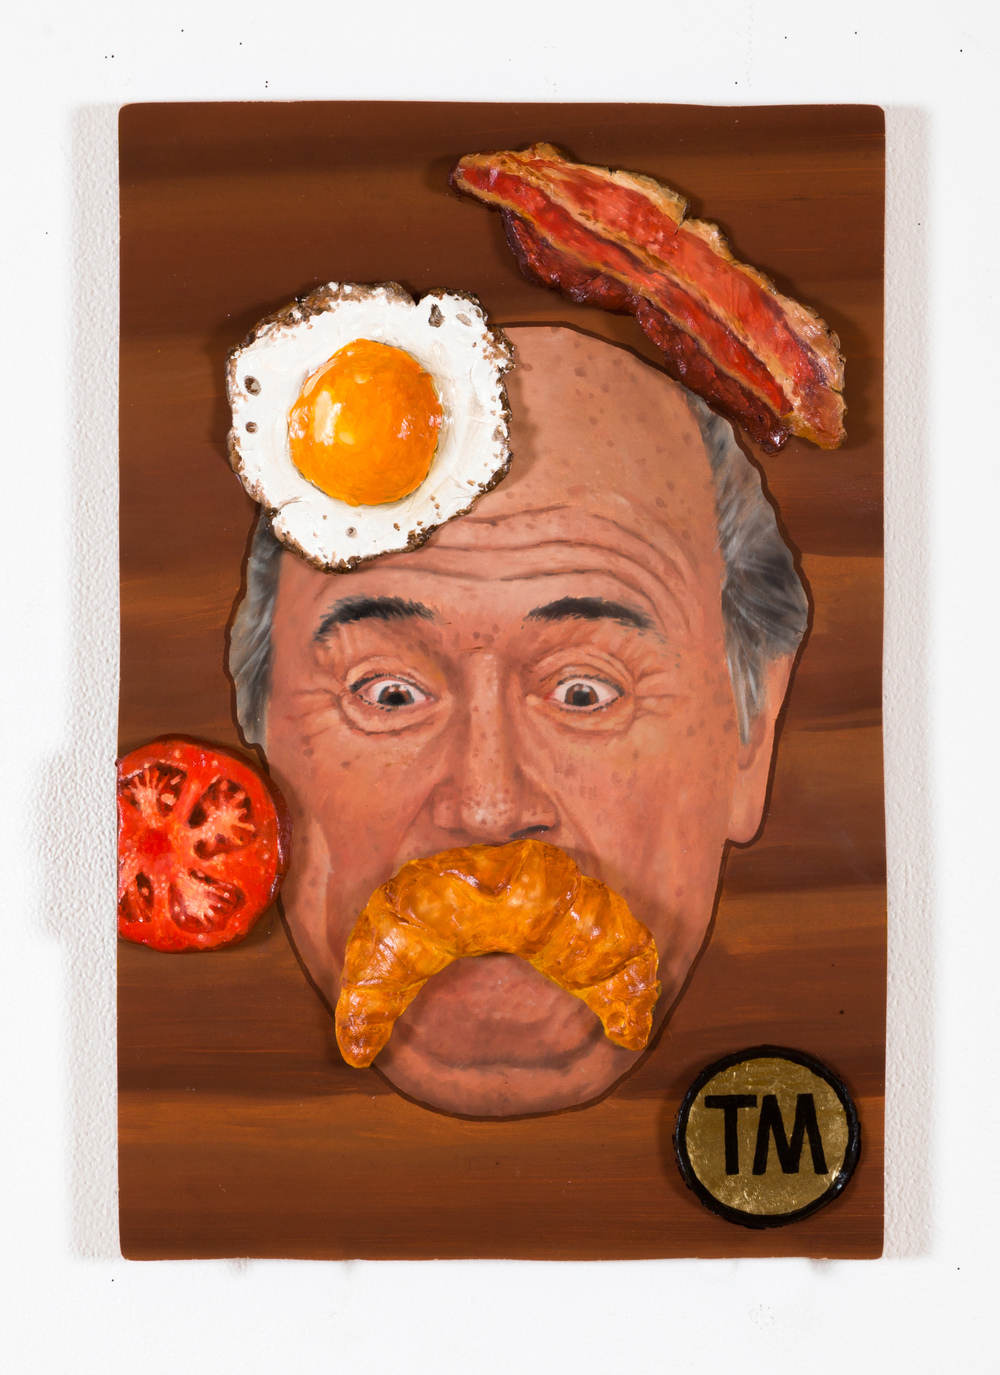 Sepp Blatter Platter, @West Space Fundraiser, oil on board and clay 2014/15. Photograph taken by Christo Crocker